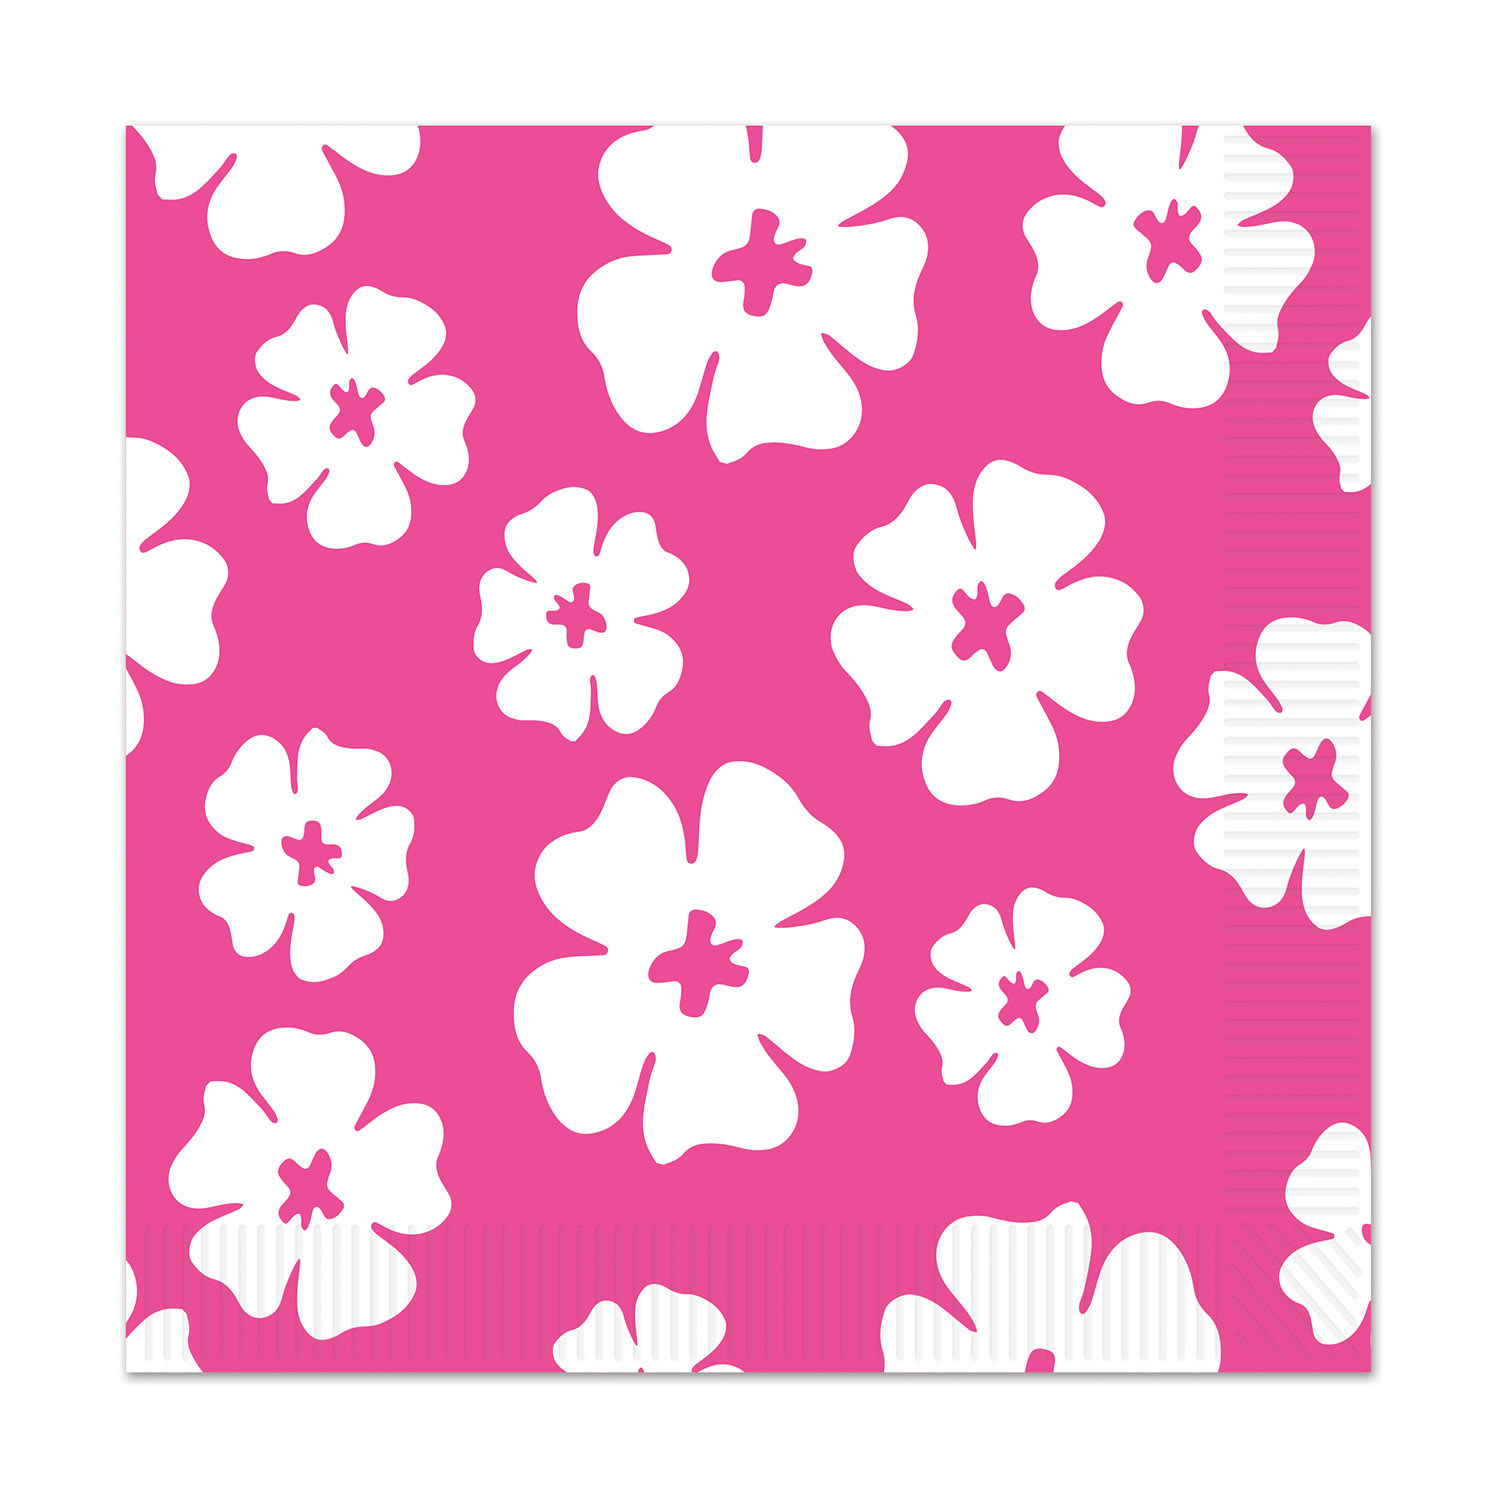 Hibiscus Beverage Napkins (Pack of 192) Hibiscus Beverage Napkins, decoration, luau, new years eve, wholesale, inexpensive, bulk